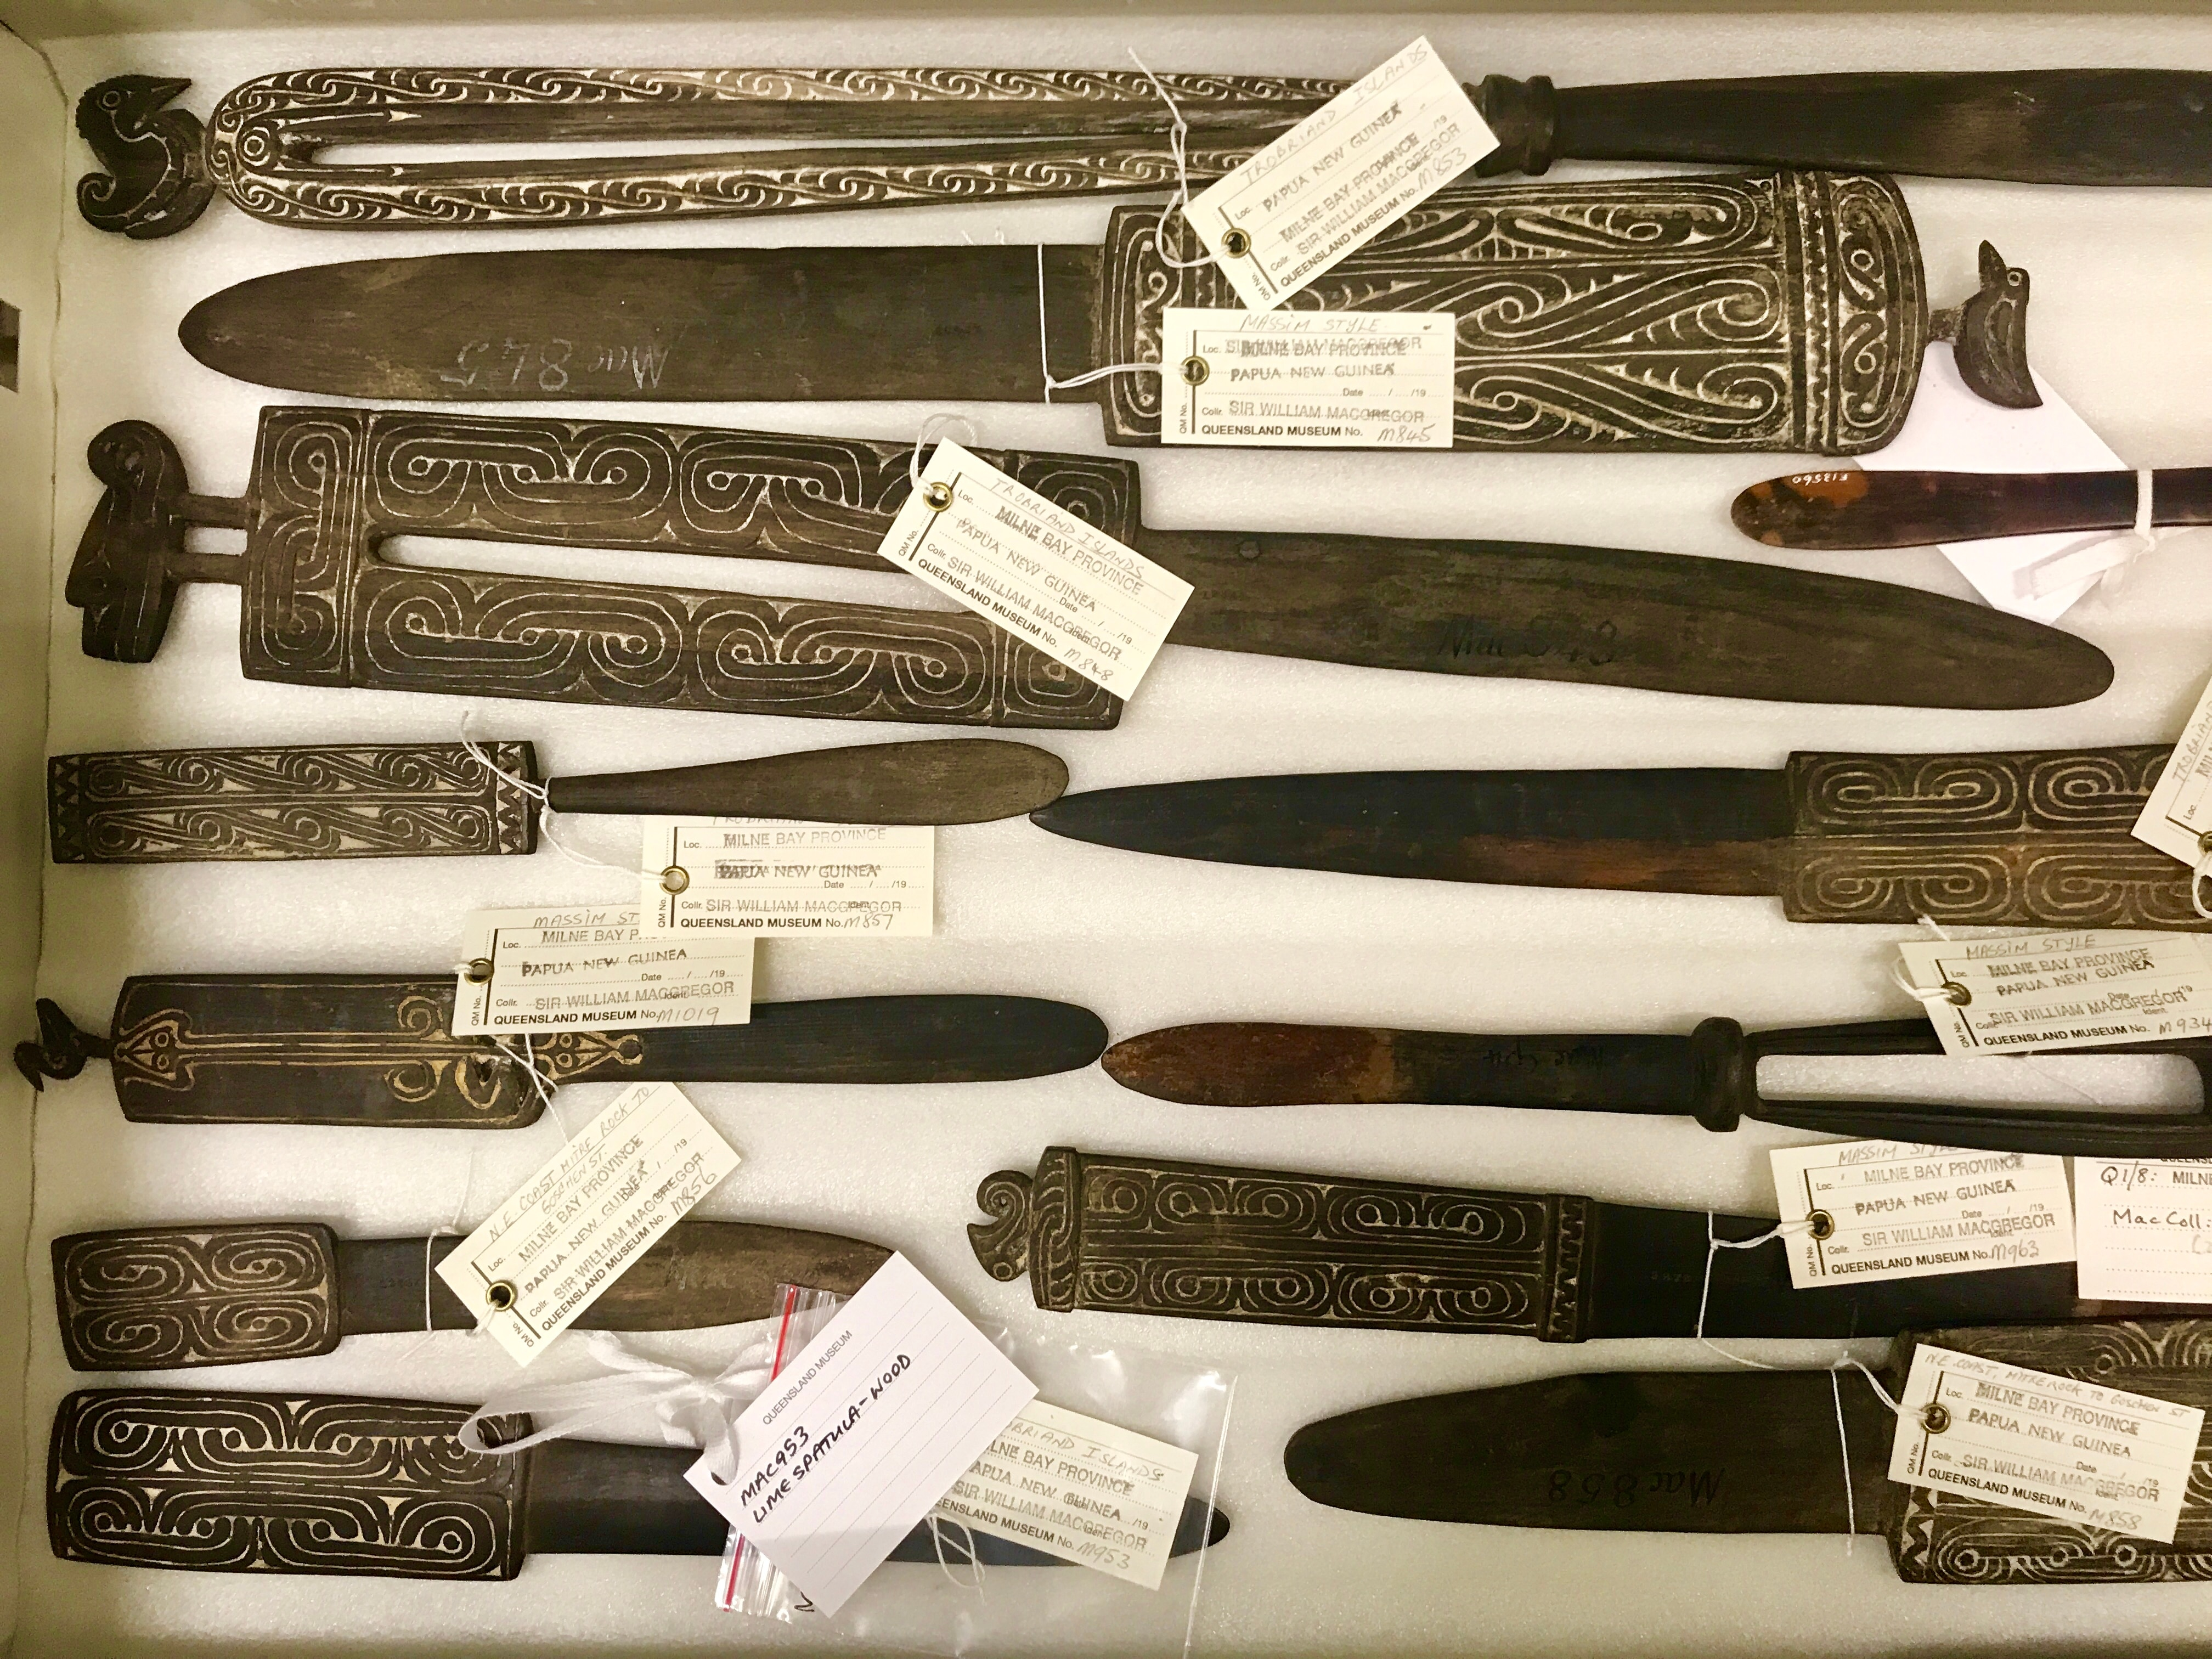 Lime spatulas from the MacGregor collection at Queensland Museum.